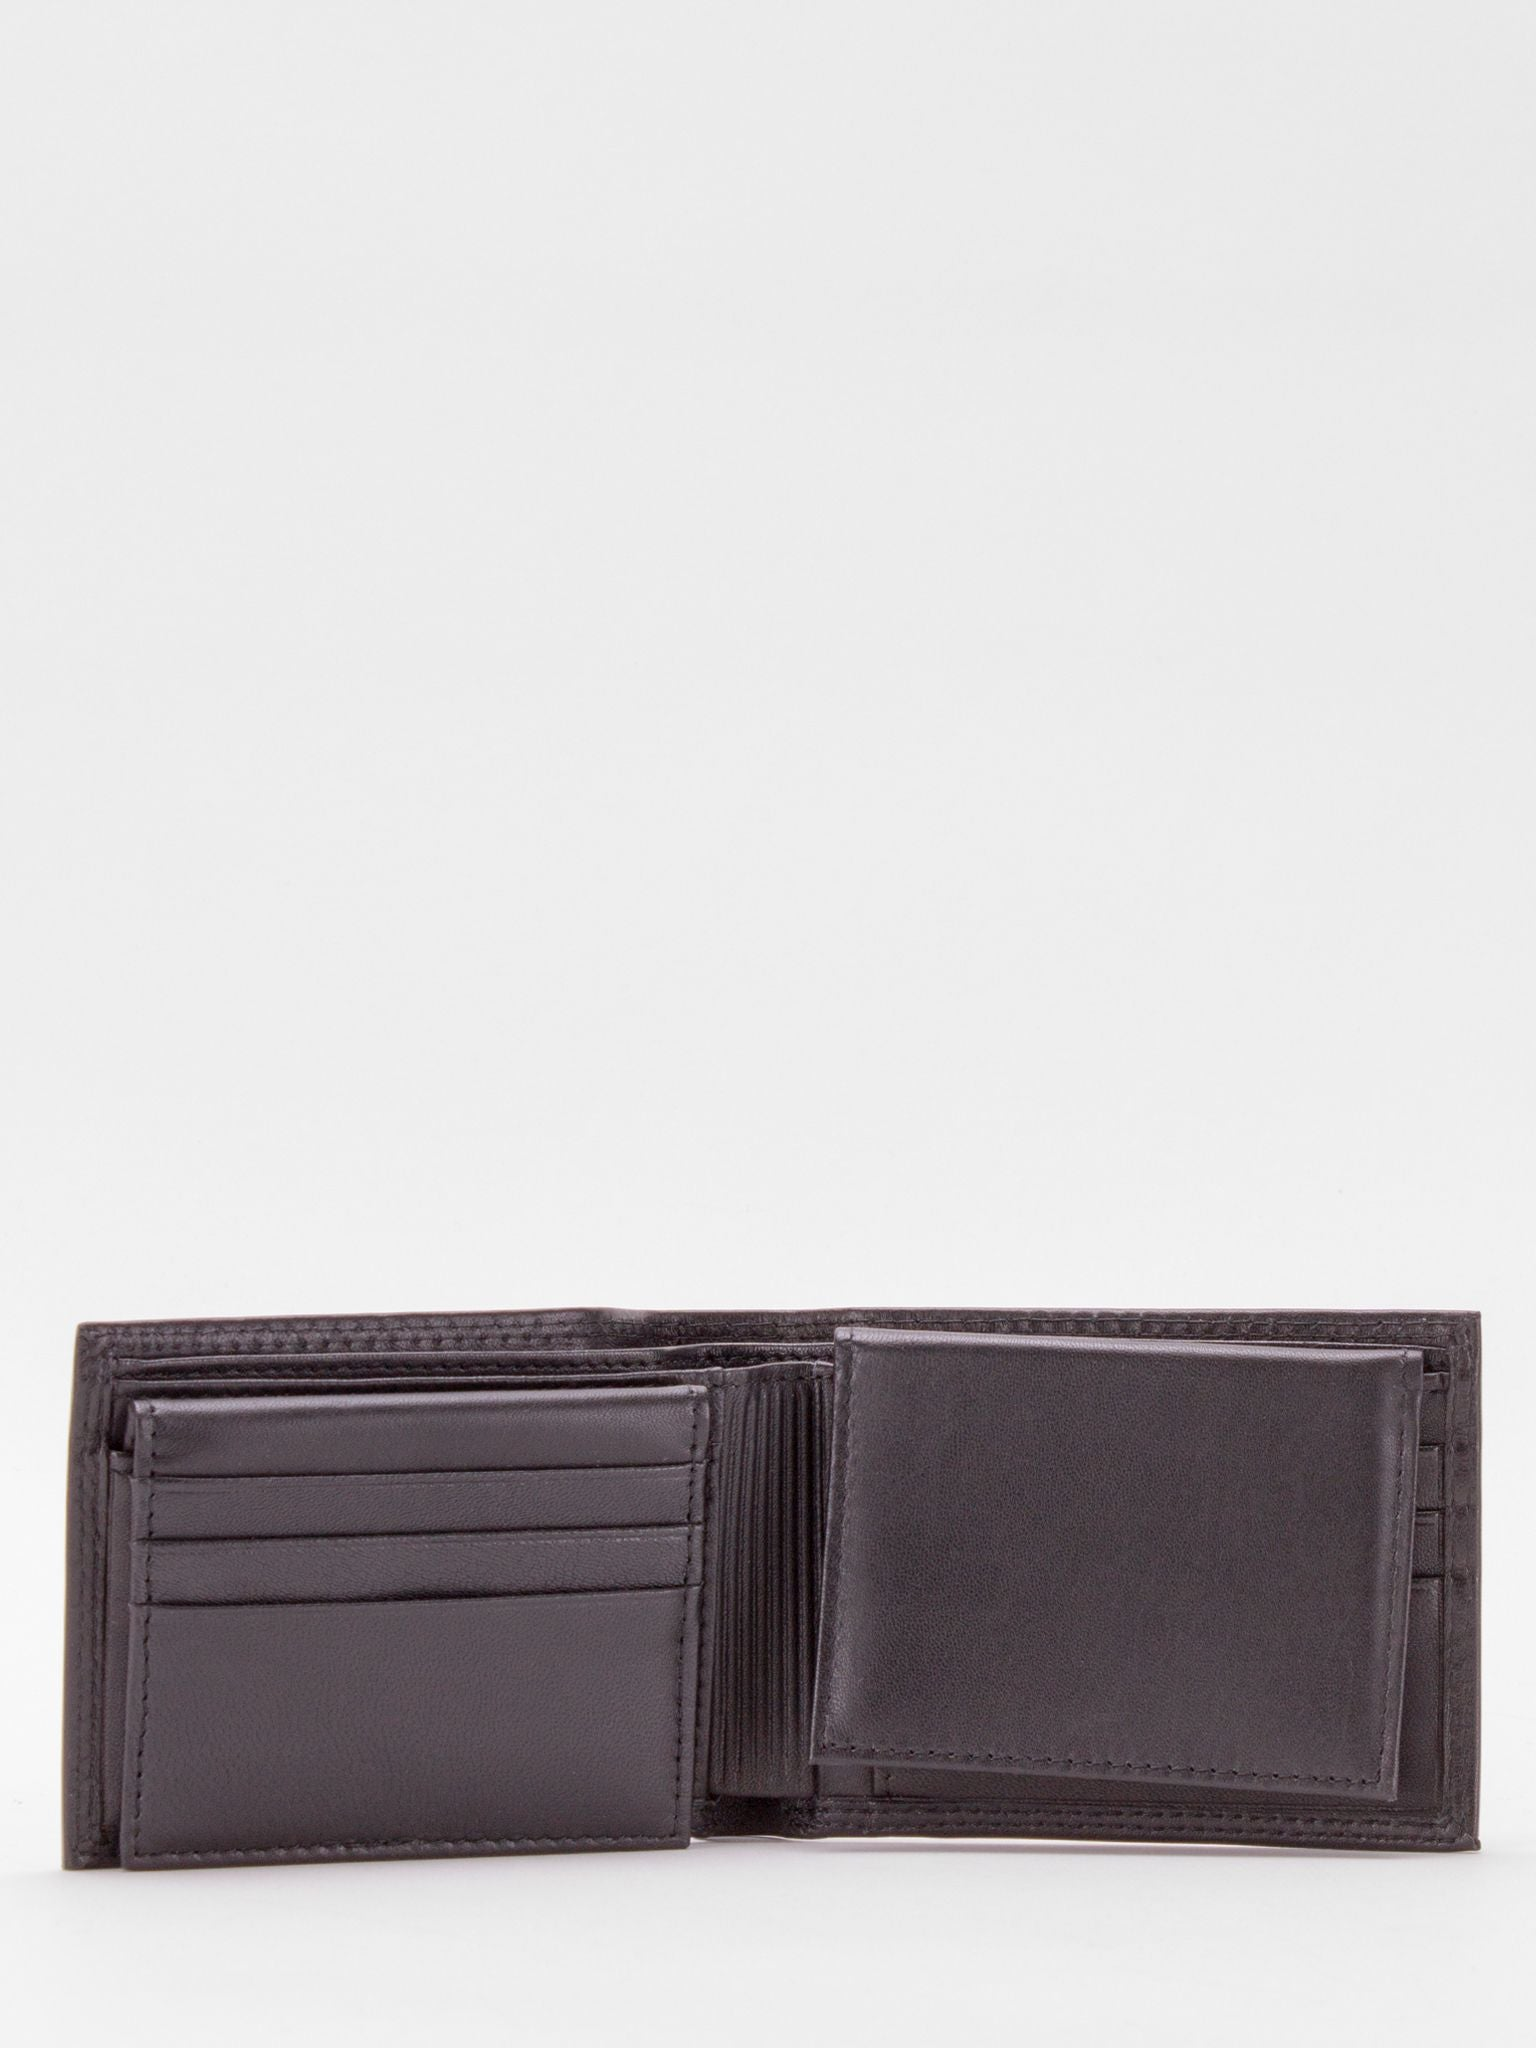 Oliver RFID Blocking Passcase Leather Billfold